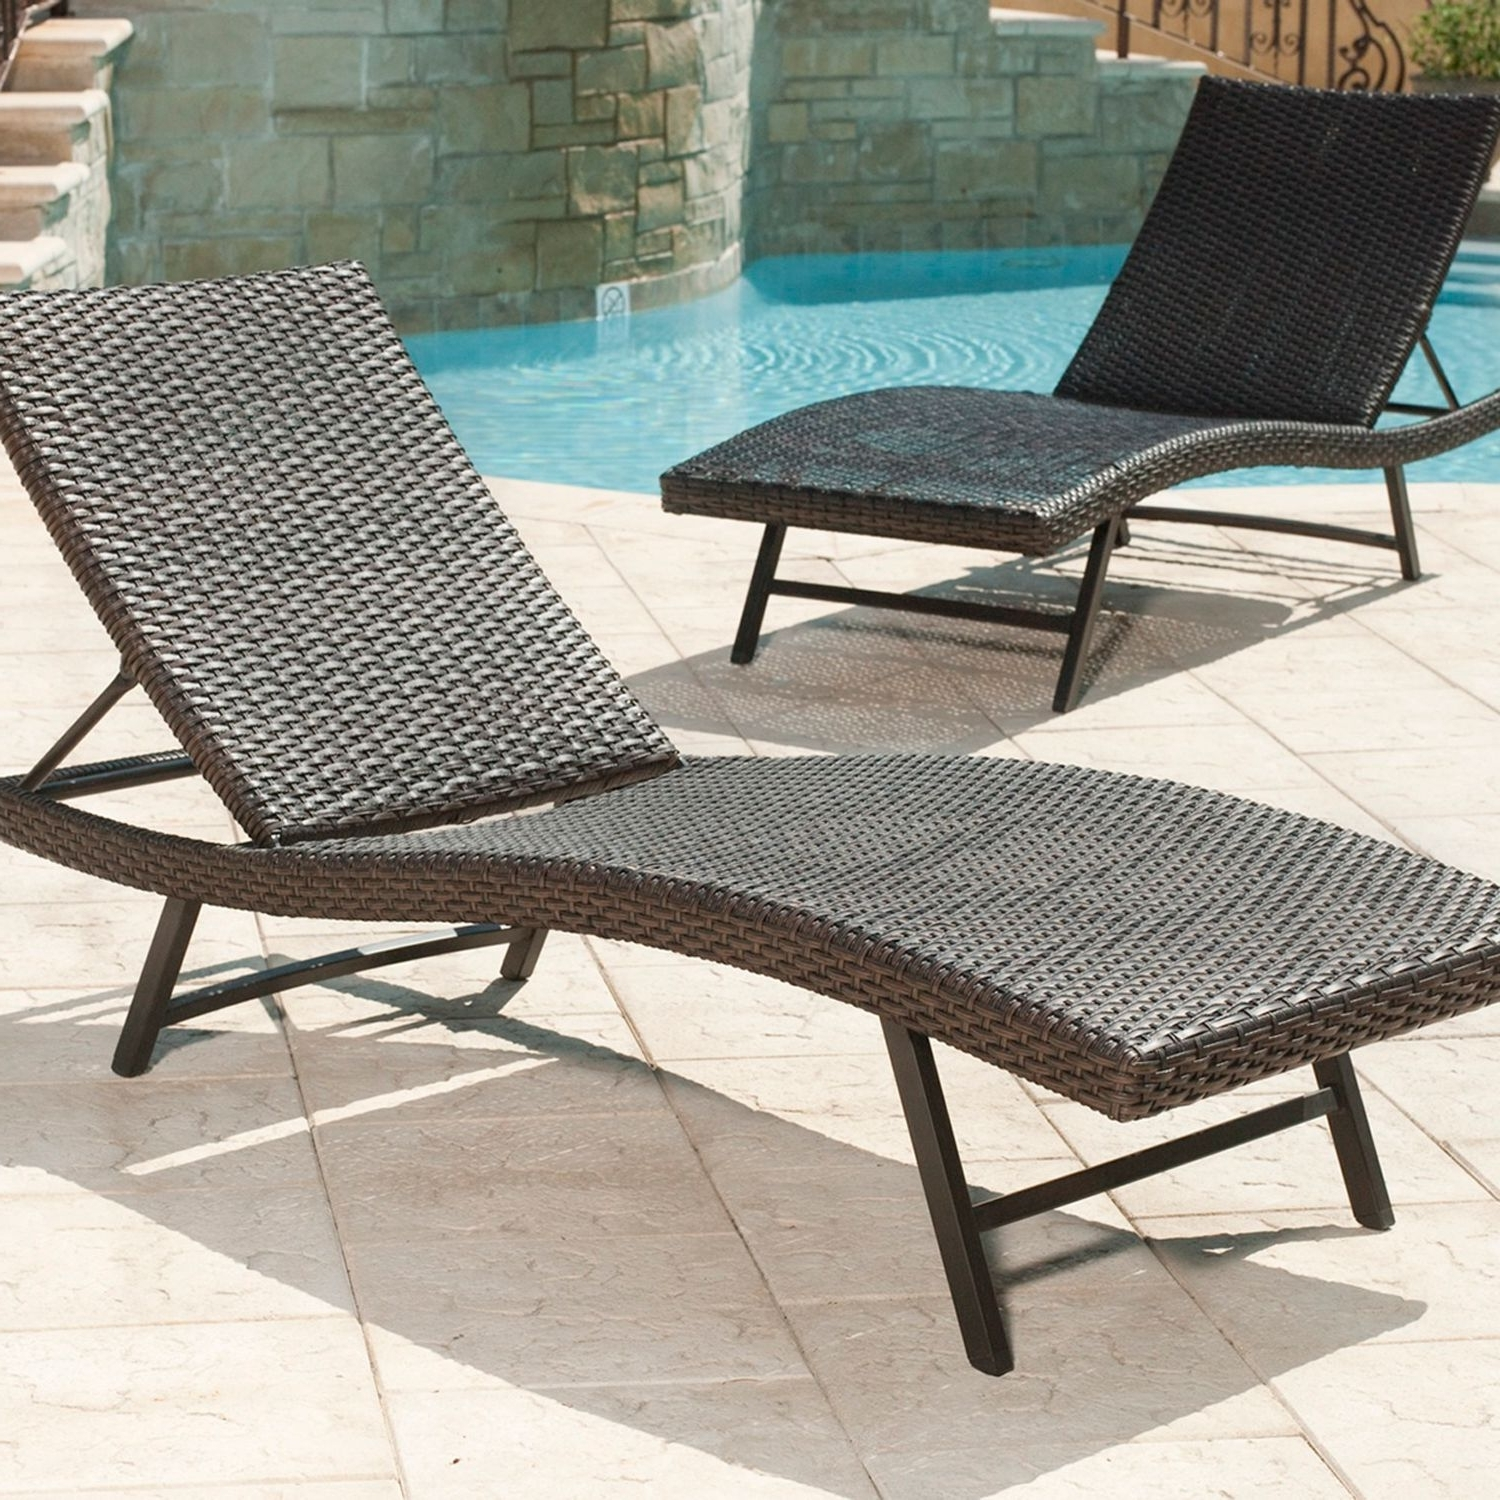 Martha Stewart Outdoor Chaise Lounge Chairs Pertaining To Fashionable Member's Mark® Heritage Chaise Lounge Chair – Sam's Club (View 6 of 15)